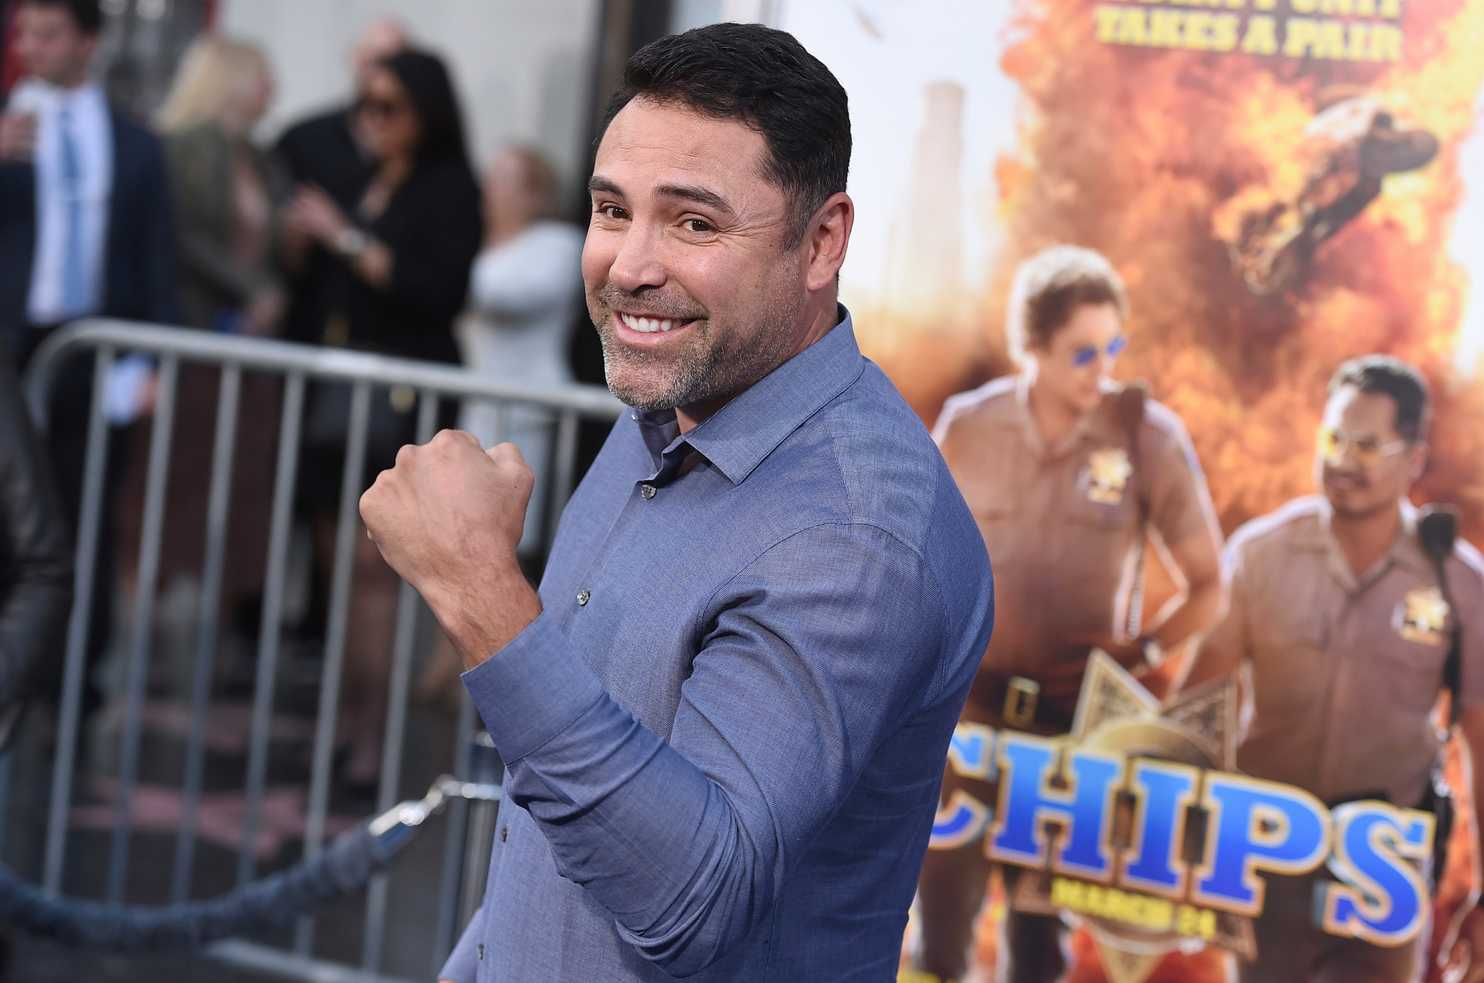 Oscar De La Hoya, Quiere regresar al box, contra Connor McGregor, 2 rounds, se prepara, Golden Boy Radio, Golden Boy Promotions, Boxeo, profesional, retiro